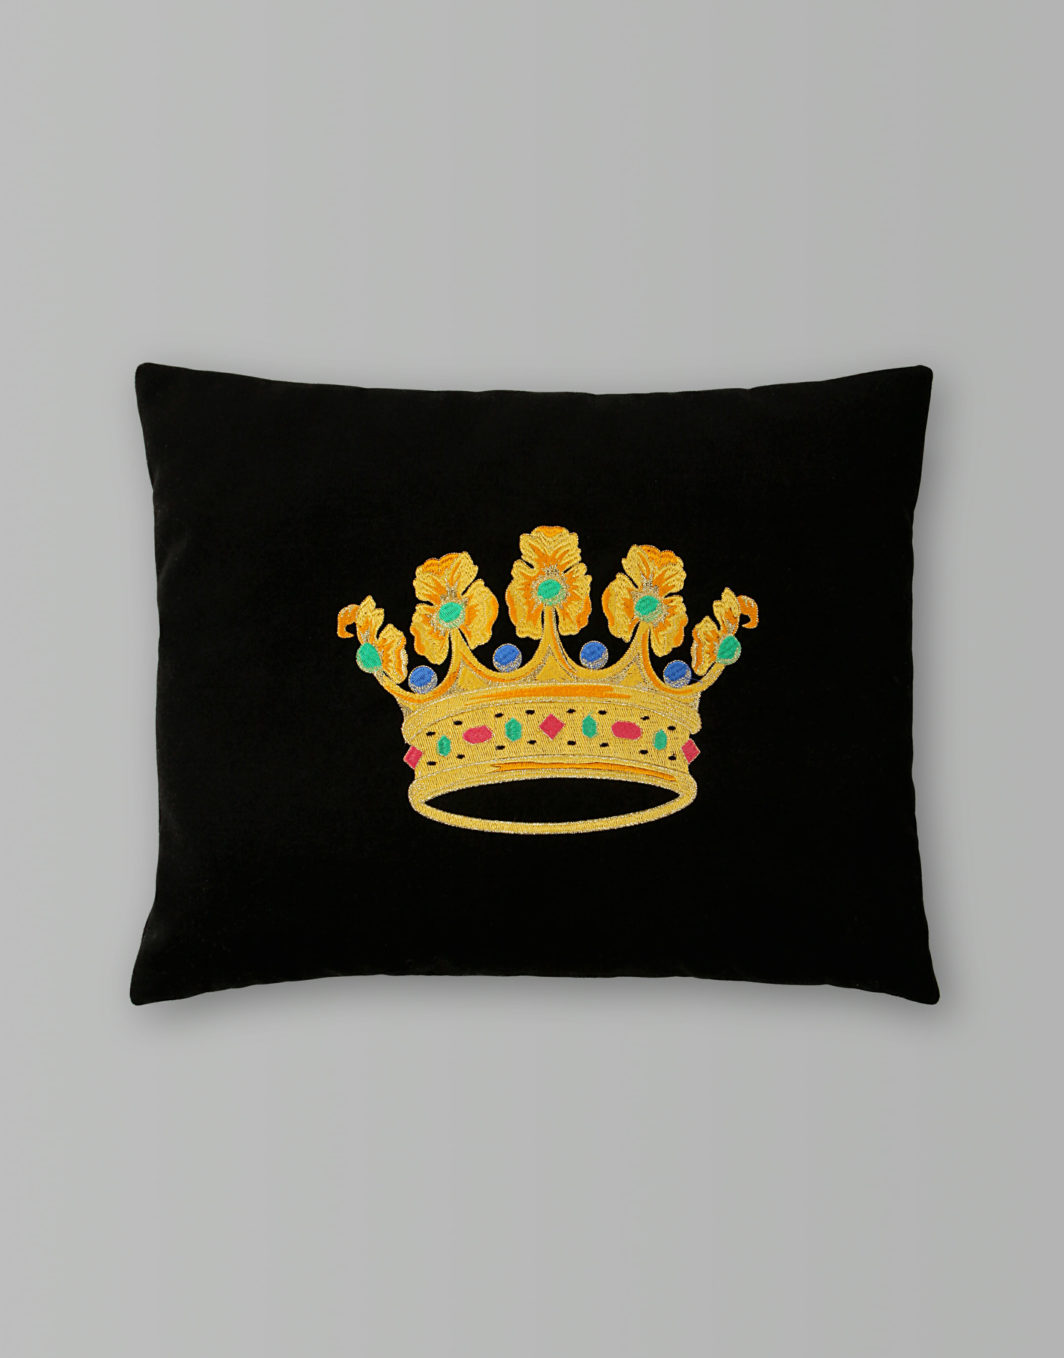 CROWN CUSHION